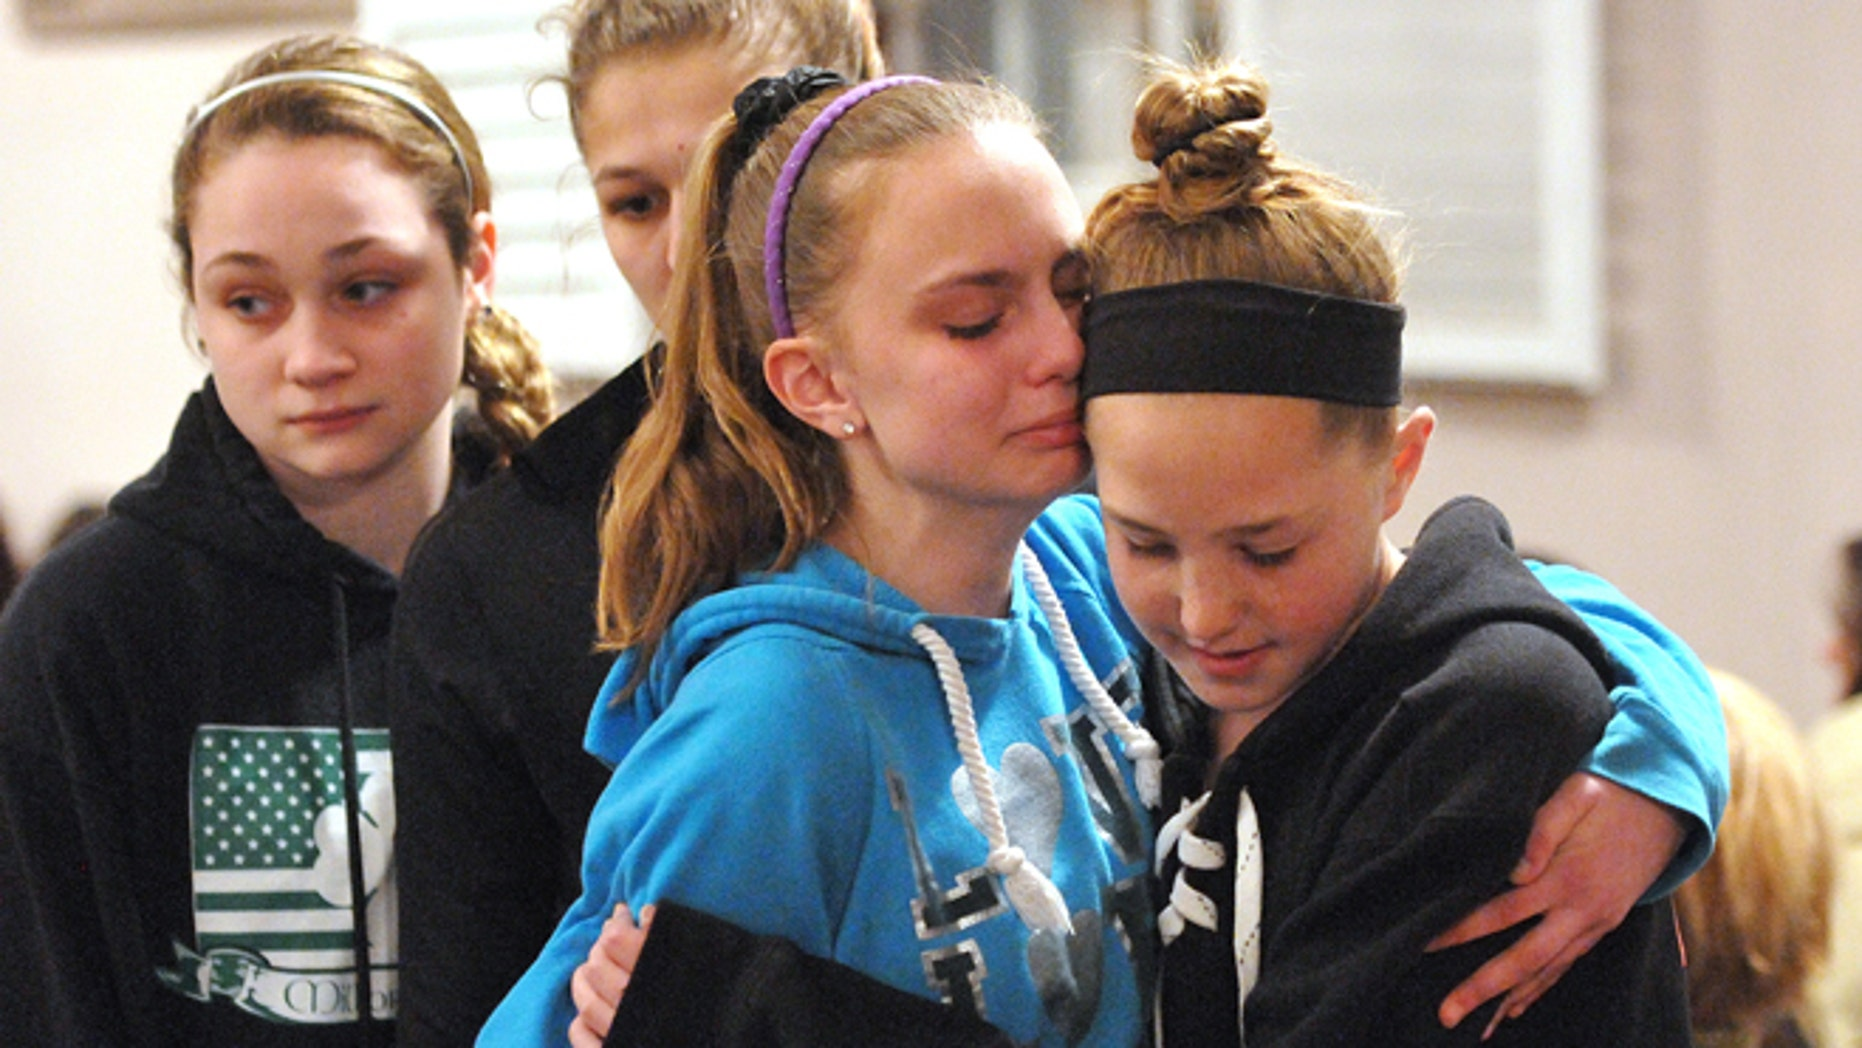 April 25, 2014:  Friends and family including many students from Jonathan Law High School attend a memorial service at the First United Church of Christ in Milford, Conn., for Maren Sanchez who was killed at the school.